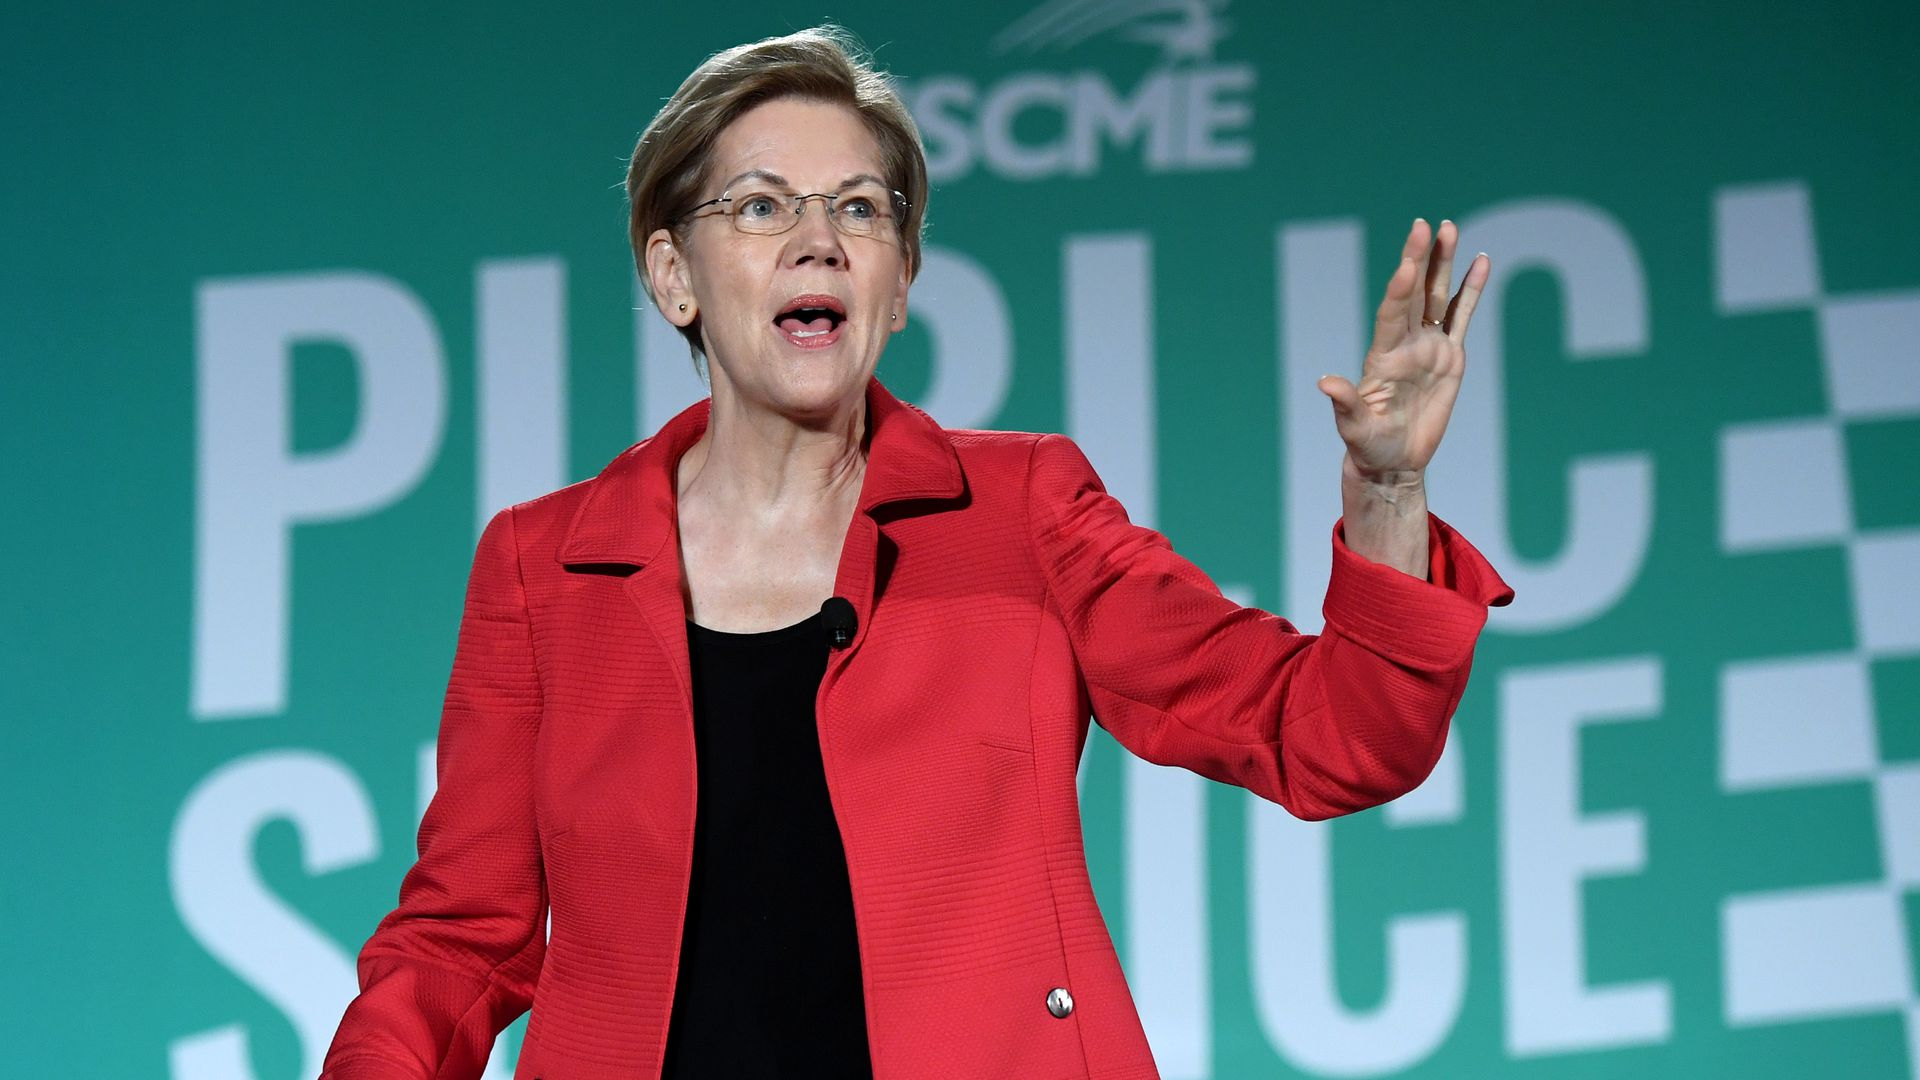 In this image, Warren wears a blazer and speaks on a stage.